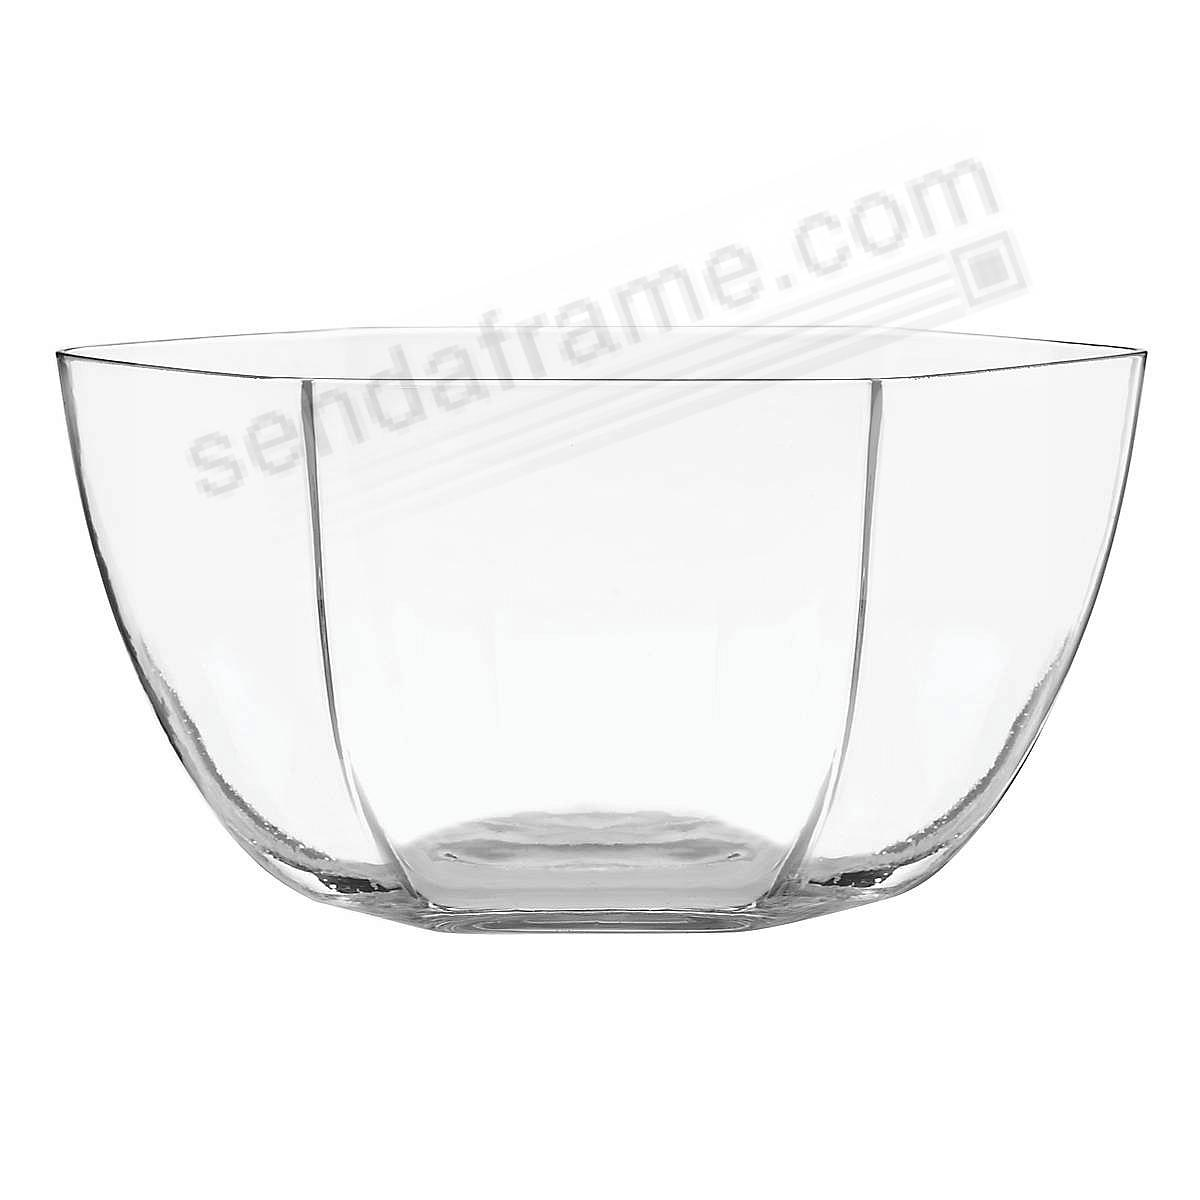 CANNON STREET 10in CENTERPIECE BOWL by kate spade new york®